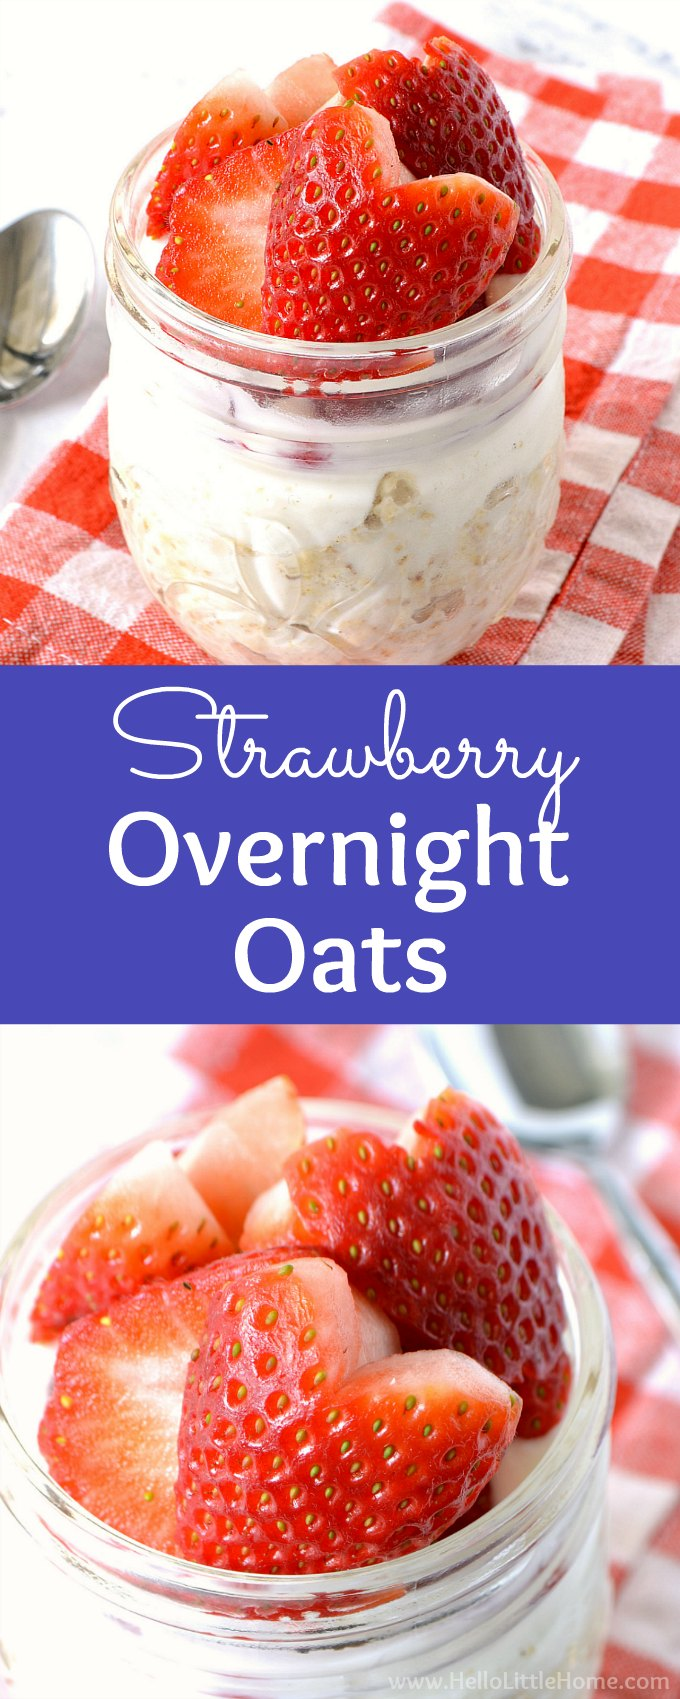 Strawberry Overnight Oats recipe … a quick and easy breakfast! Learn how to make healthy Strawberry Overnight Oats in mason jars. It's simple! This refrigerator oatmeal with strawberries, milk, maple syrup, and yogurt is easy to make and delicious. Make this Strawberry Overnight Oatmeal in a jar at night, grab and go in the morning. Gluten Free and perfect for a clean eating diet! | Hello Little Home #overnightoats #oatmeal #oats #strawberries #strawberriesandcream #strawberryovernightoats